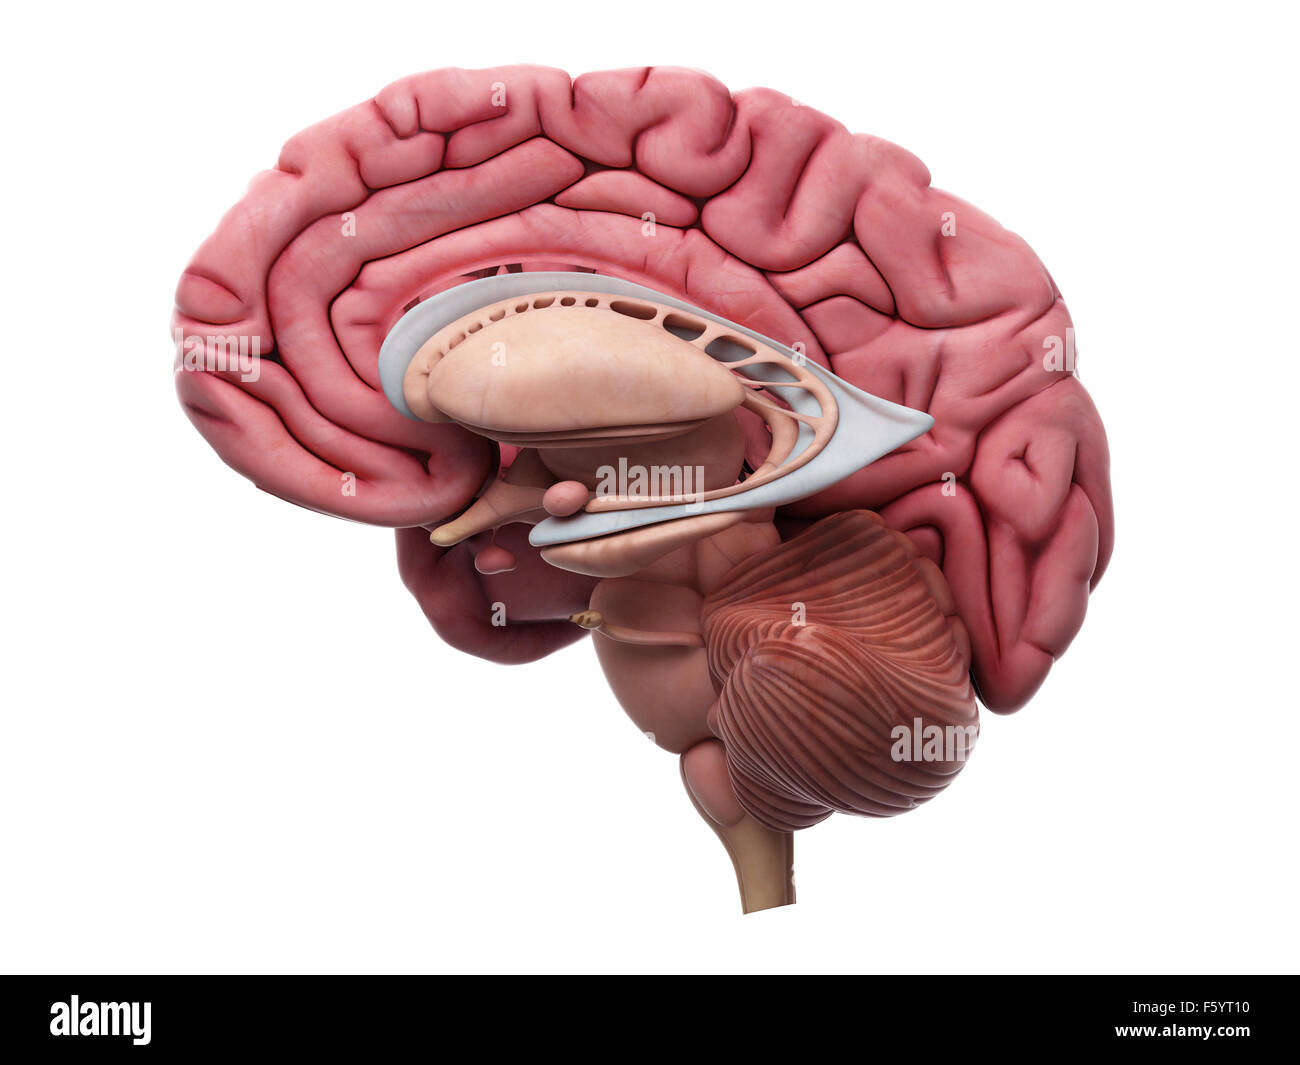 medically accurate illustration of the brain anatomy - Stock Image